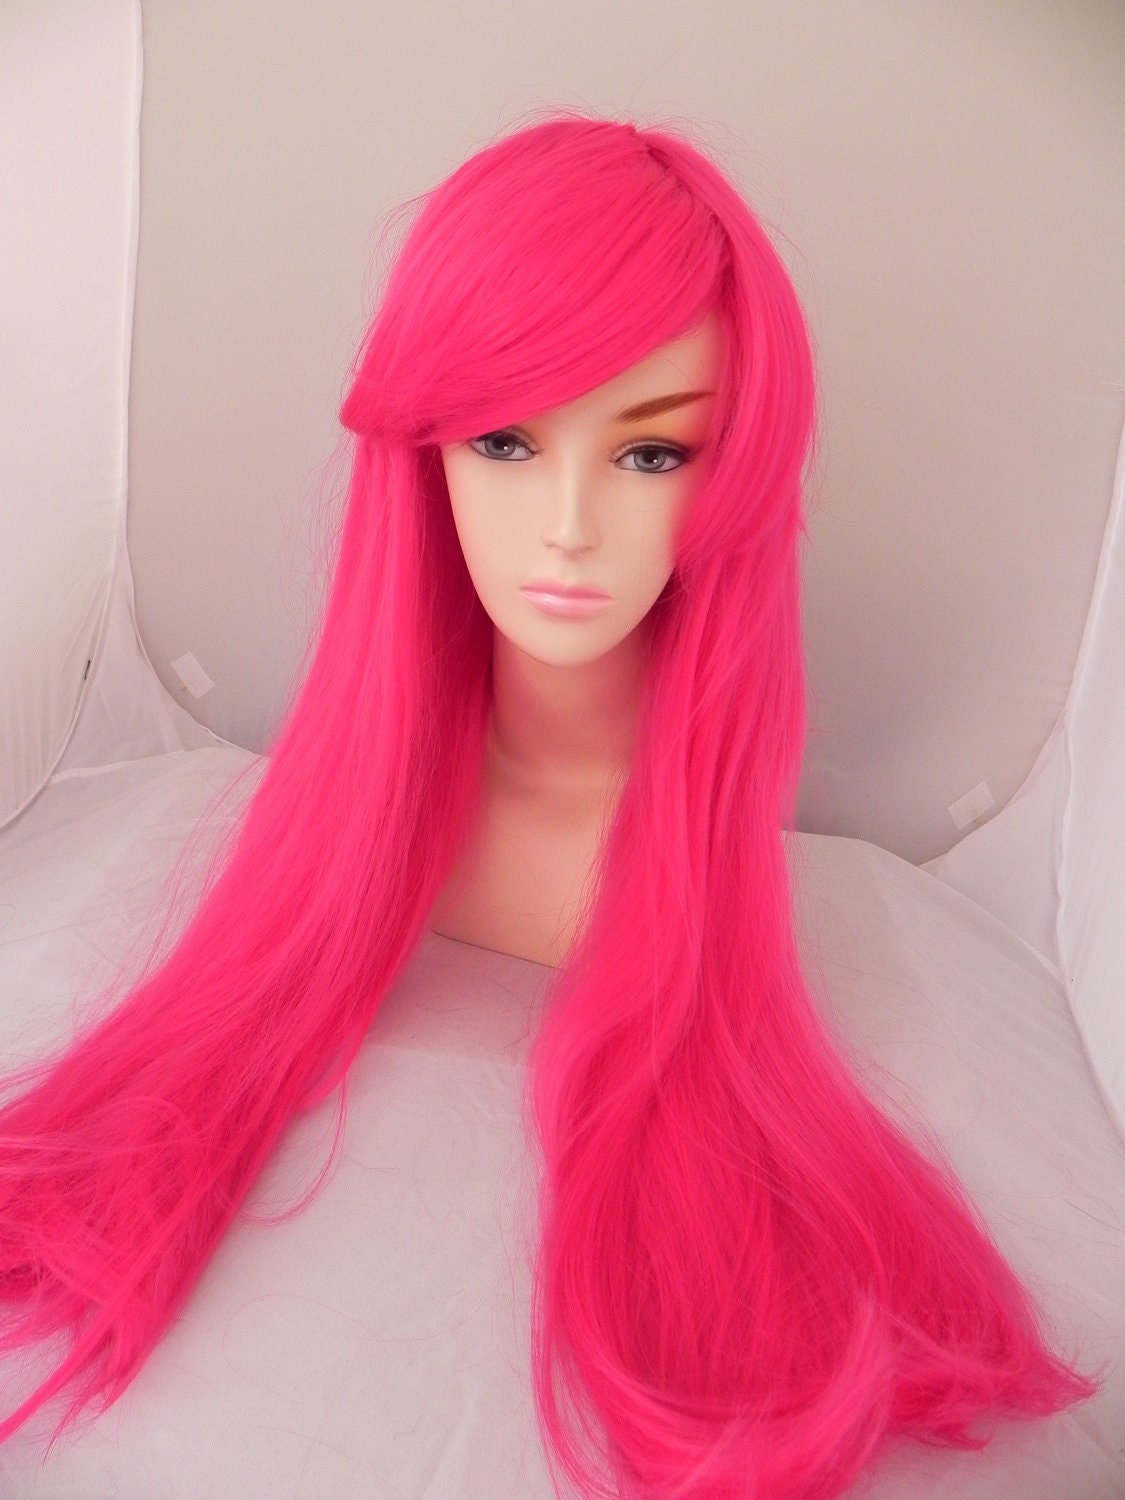 Items similar to Audrey Kitching Inspired / Hot Pink